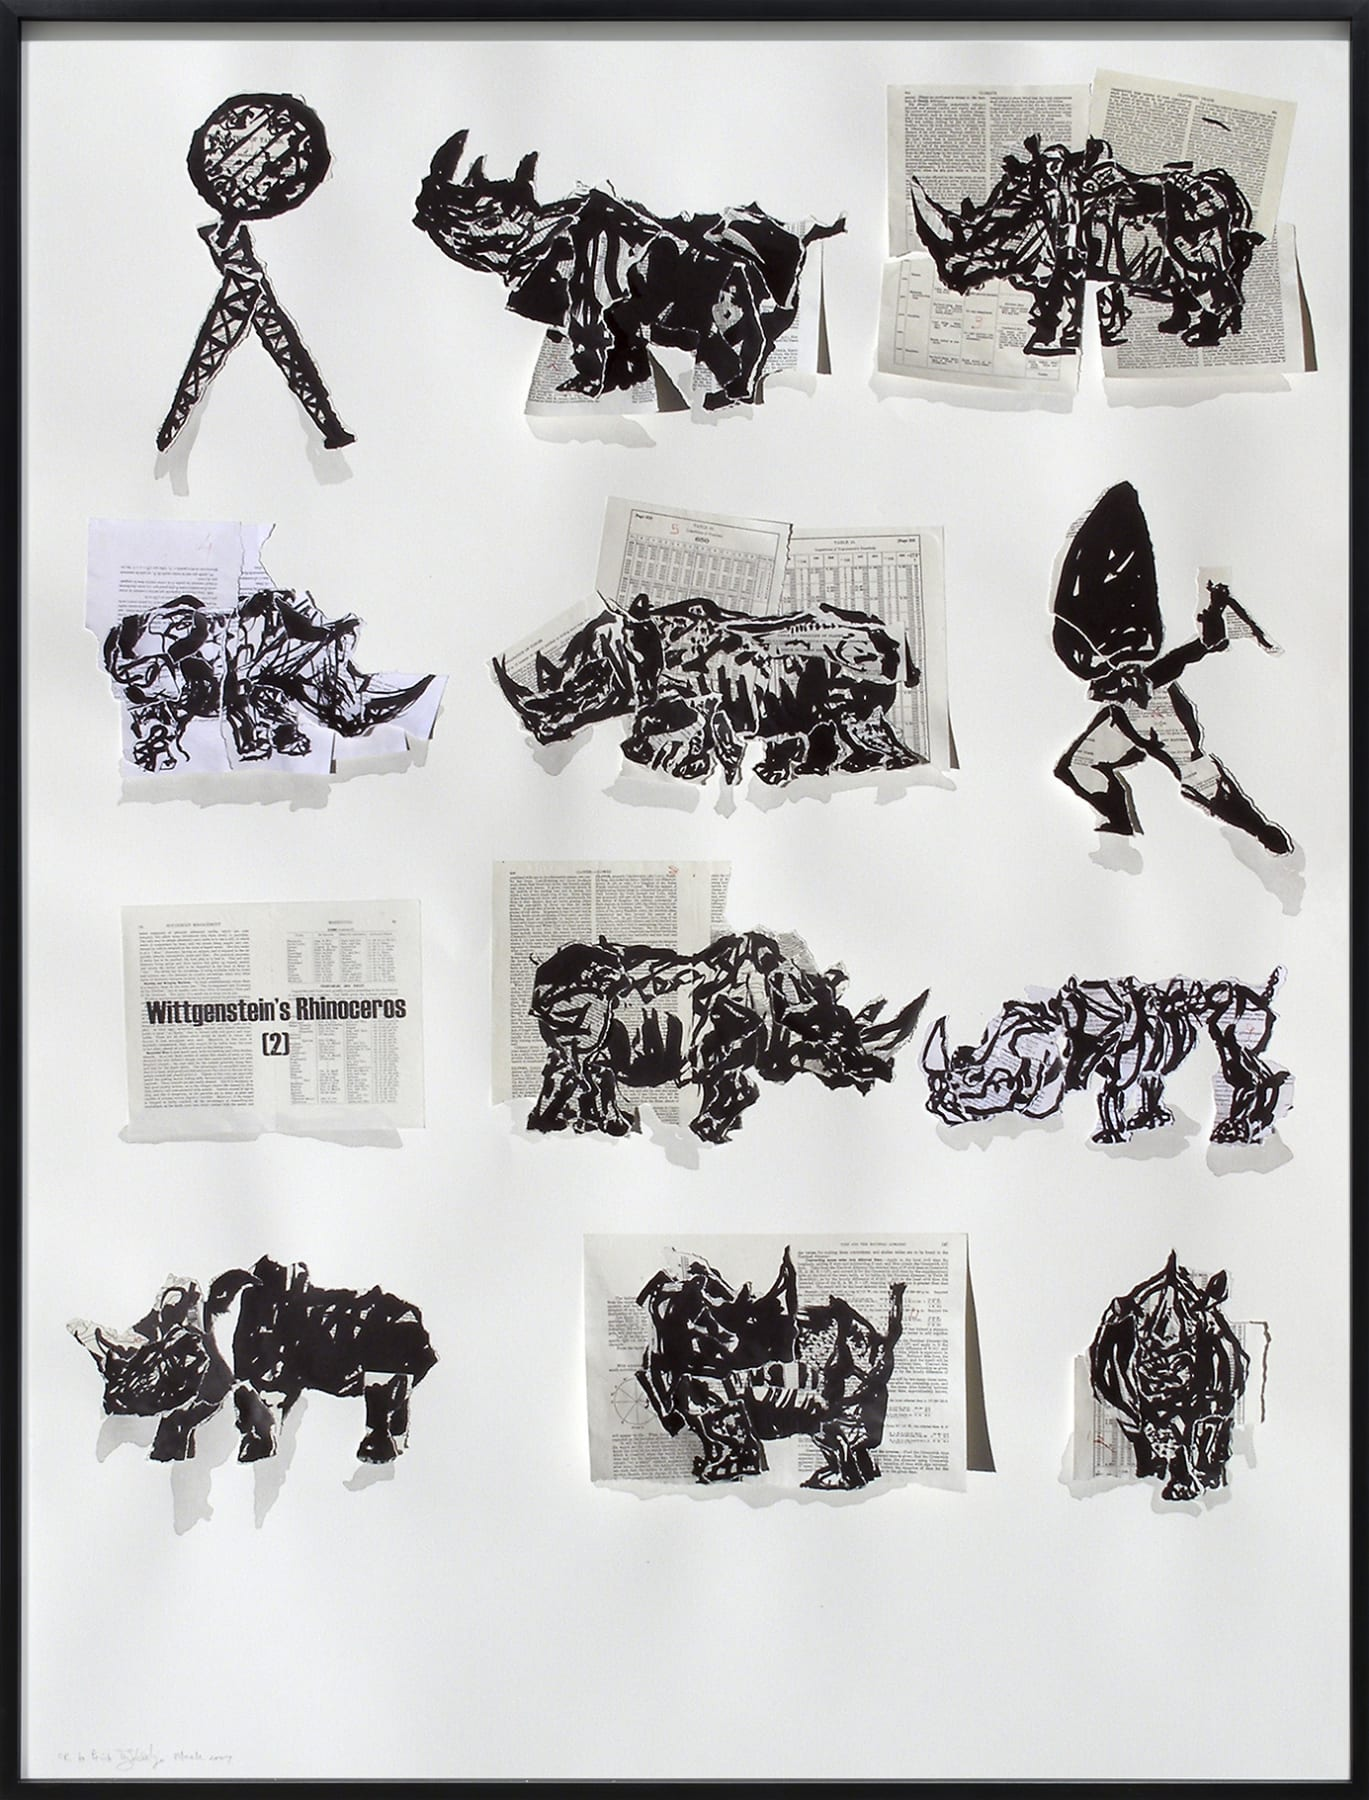 William Kentridge, Wittgenstein's Rhinoceros, 2007